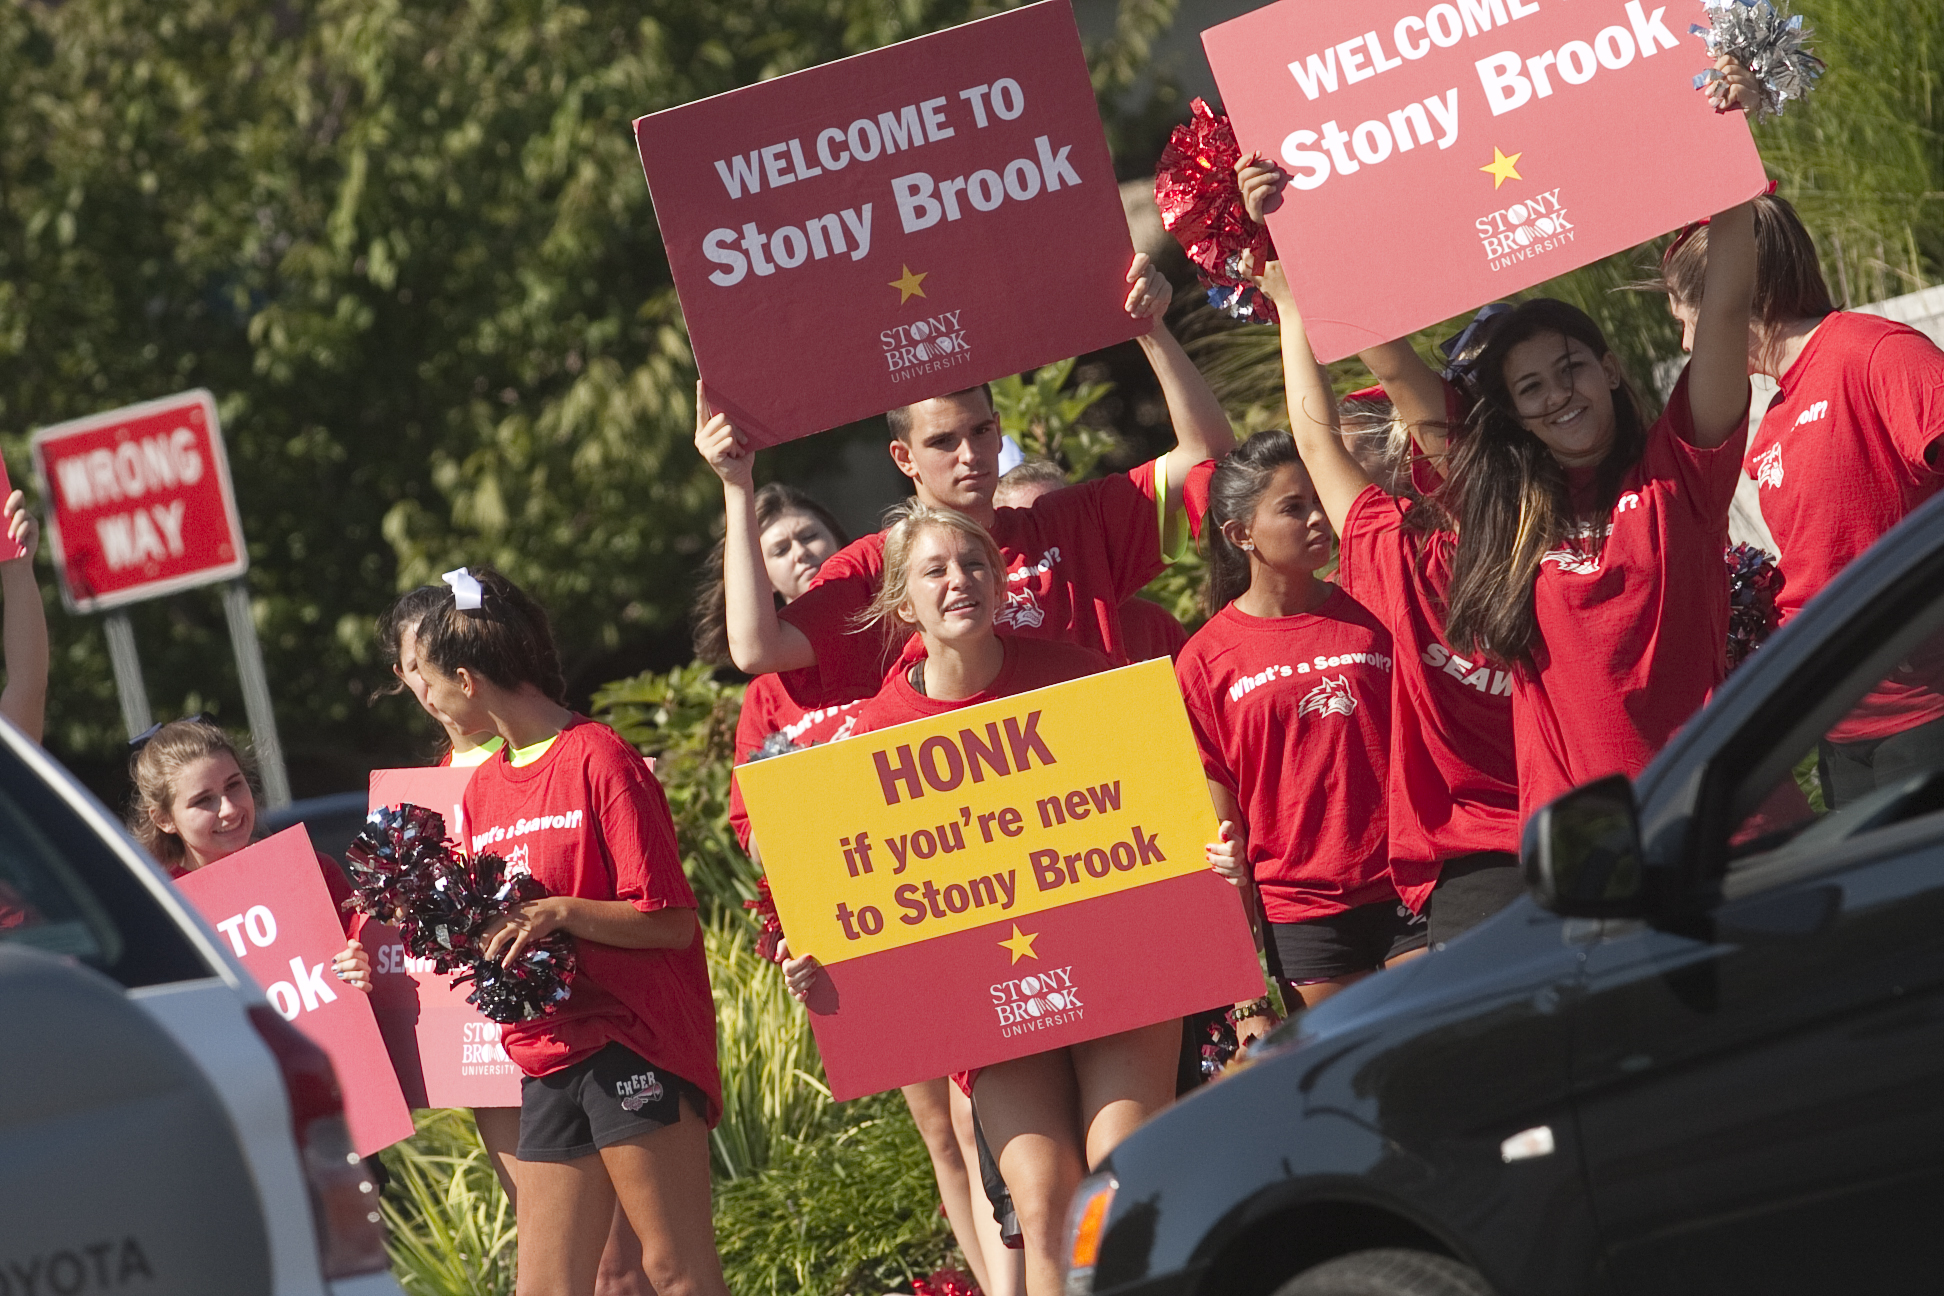 Stony Brook, NY; Stony Brook University: Wolfie and a bunch of cheerleaders welcome new students and their families as they enter the main entrance to the university during Move-In Day, August 26, 2011.